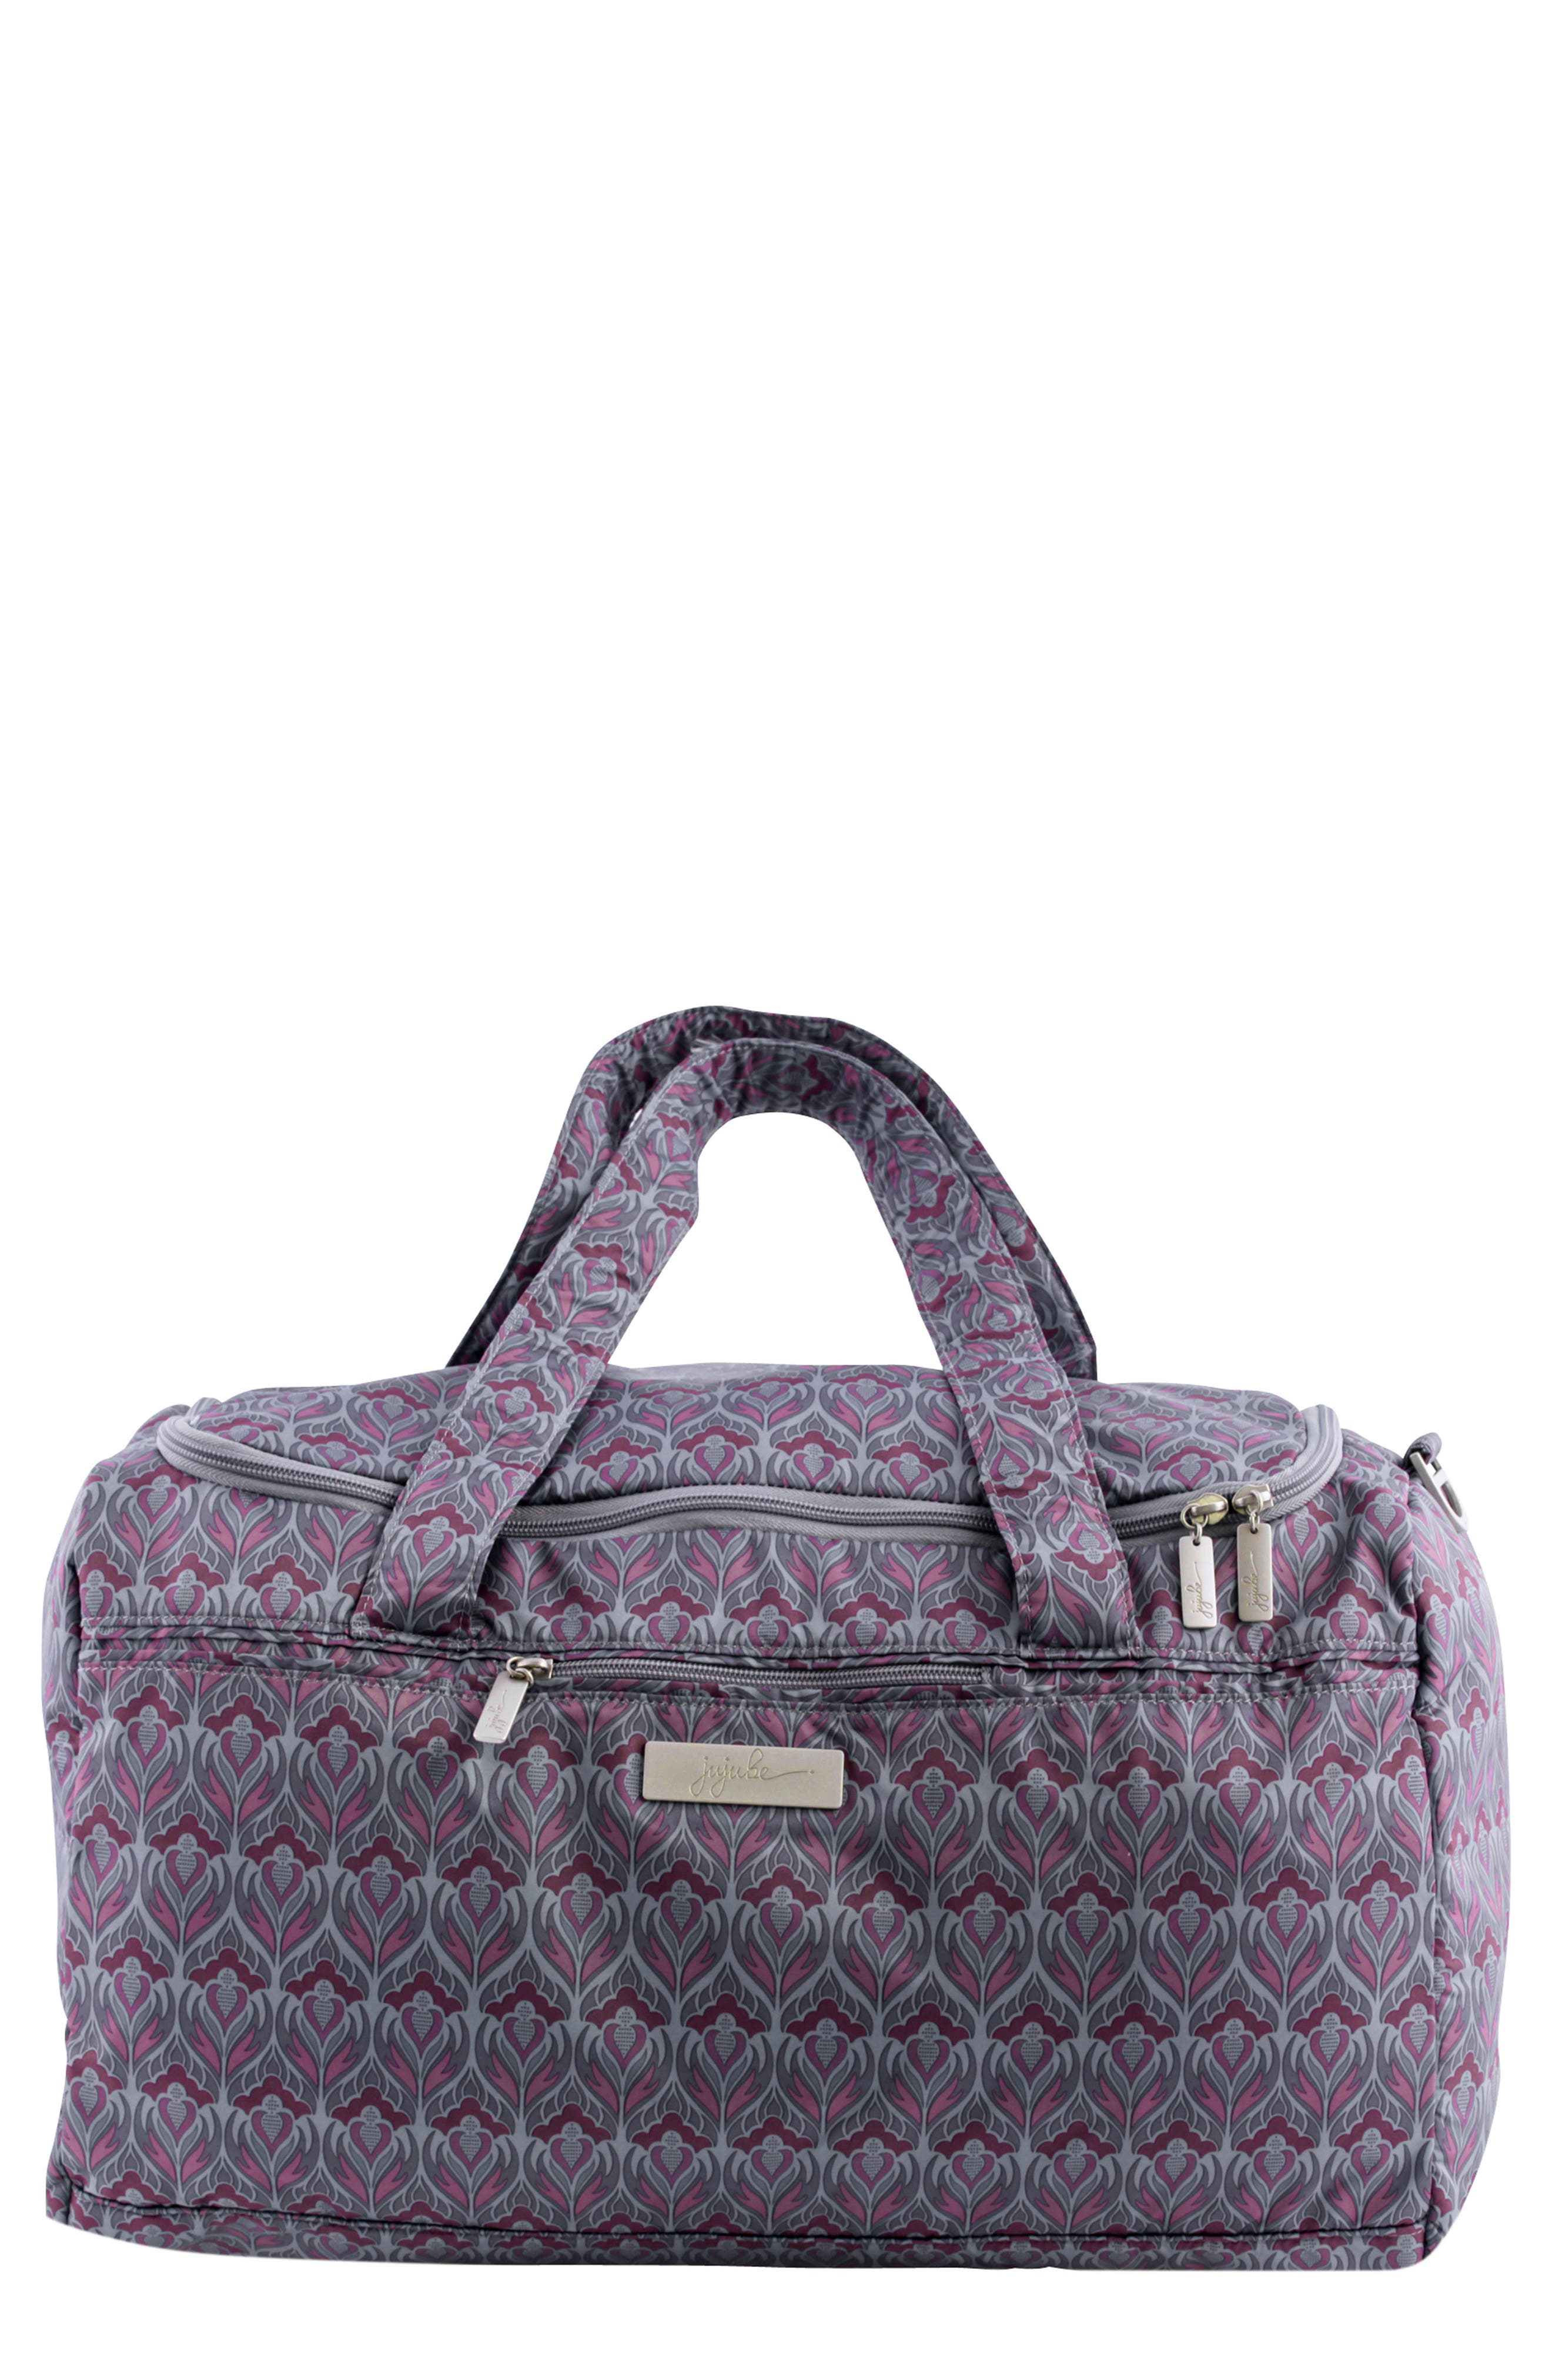 'Starlet' Travel Diaper Bag,                             Main thumbnail 1, color,